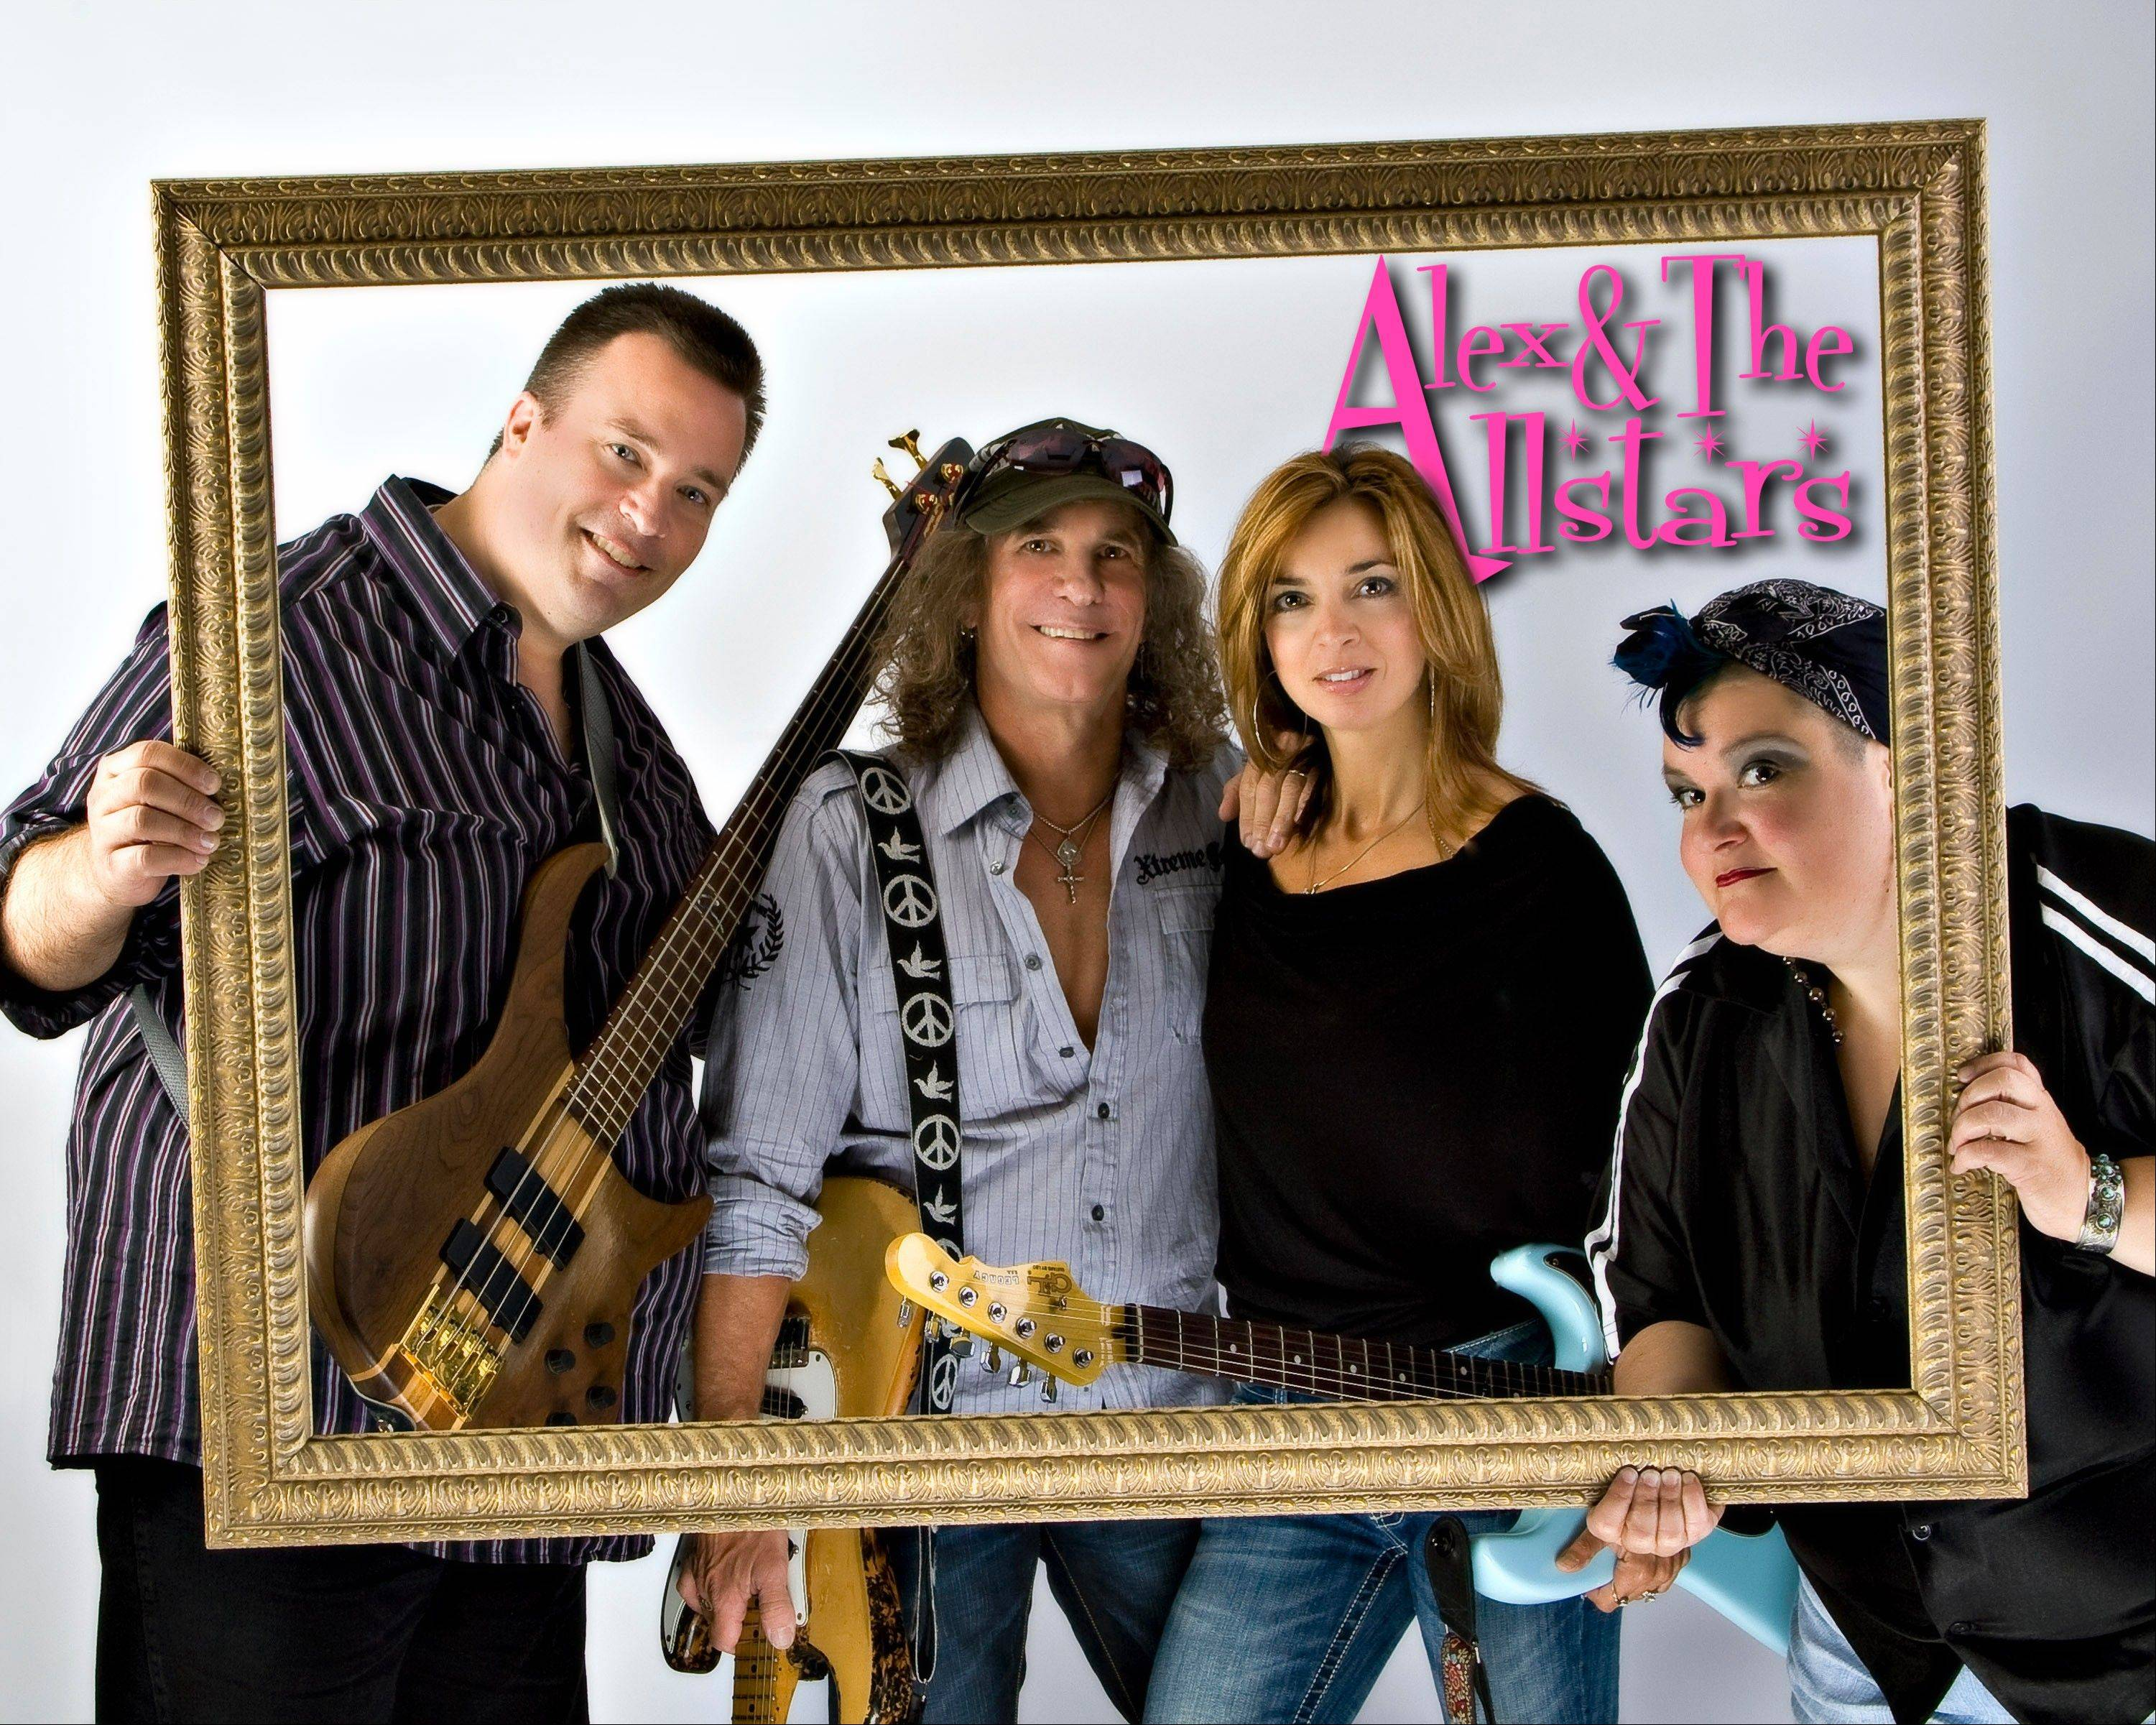 Alex & The Allstars headline Peggy Kinnane's Irish Restaurant and Pub in Arlington Heights.